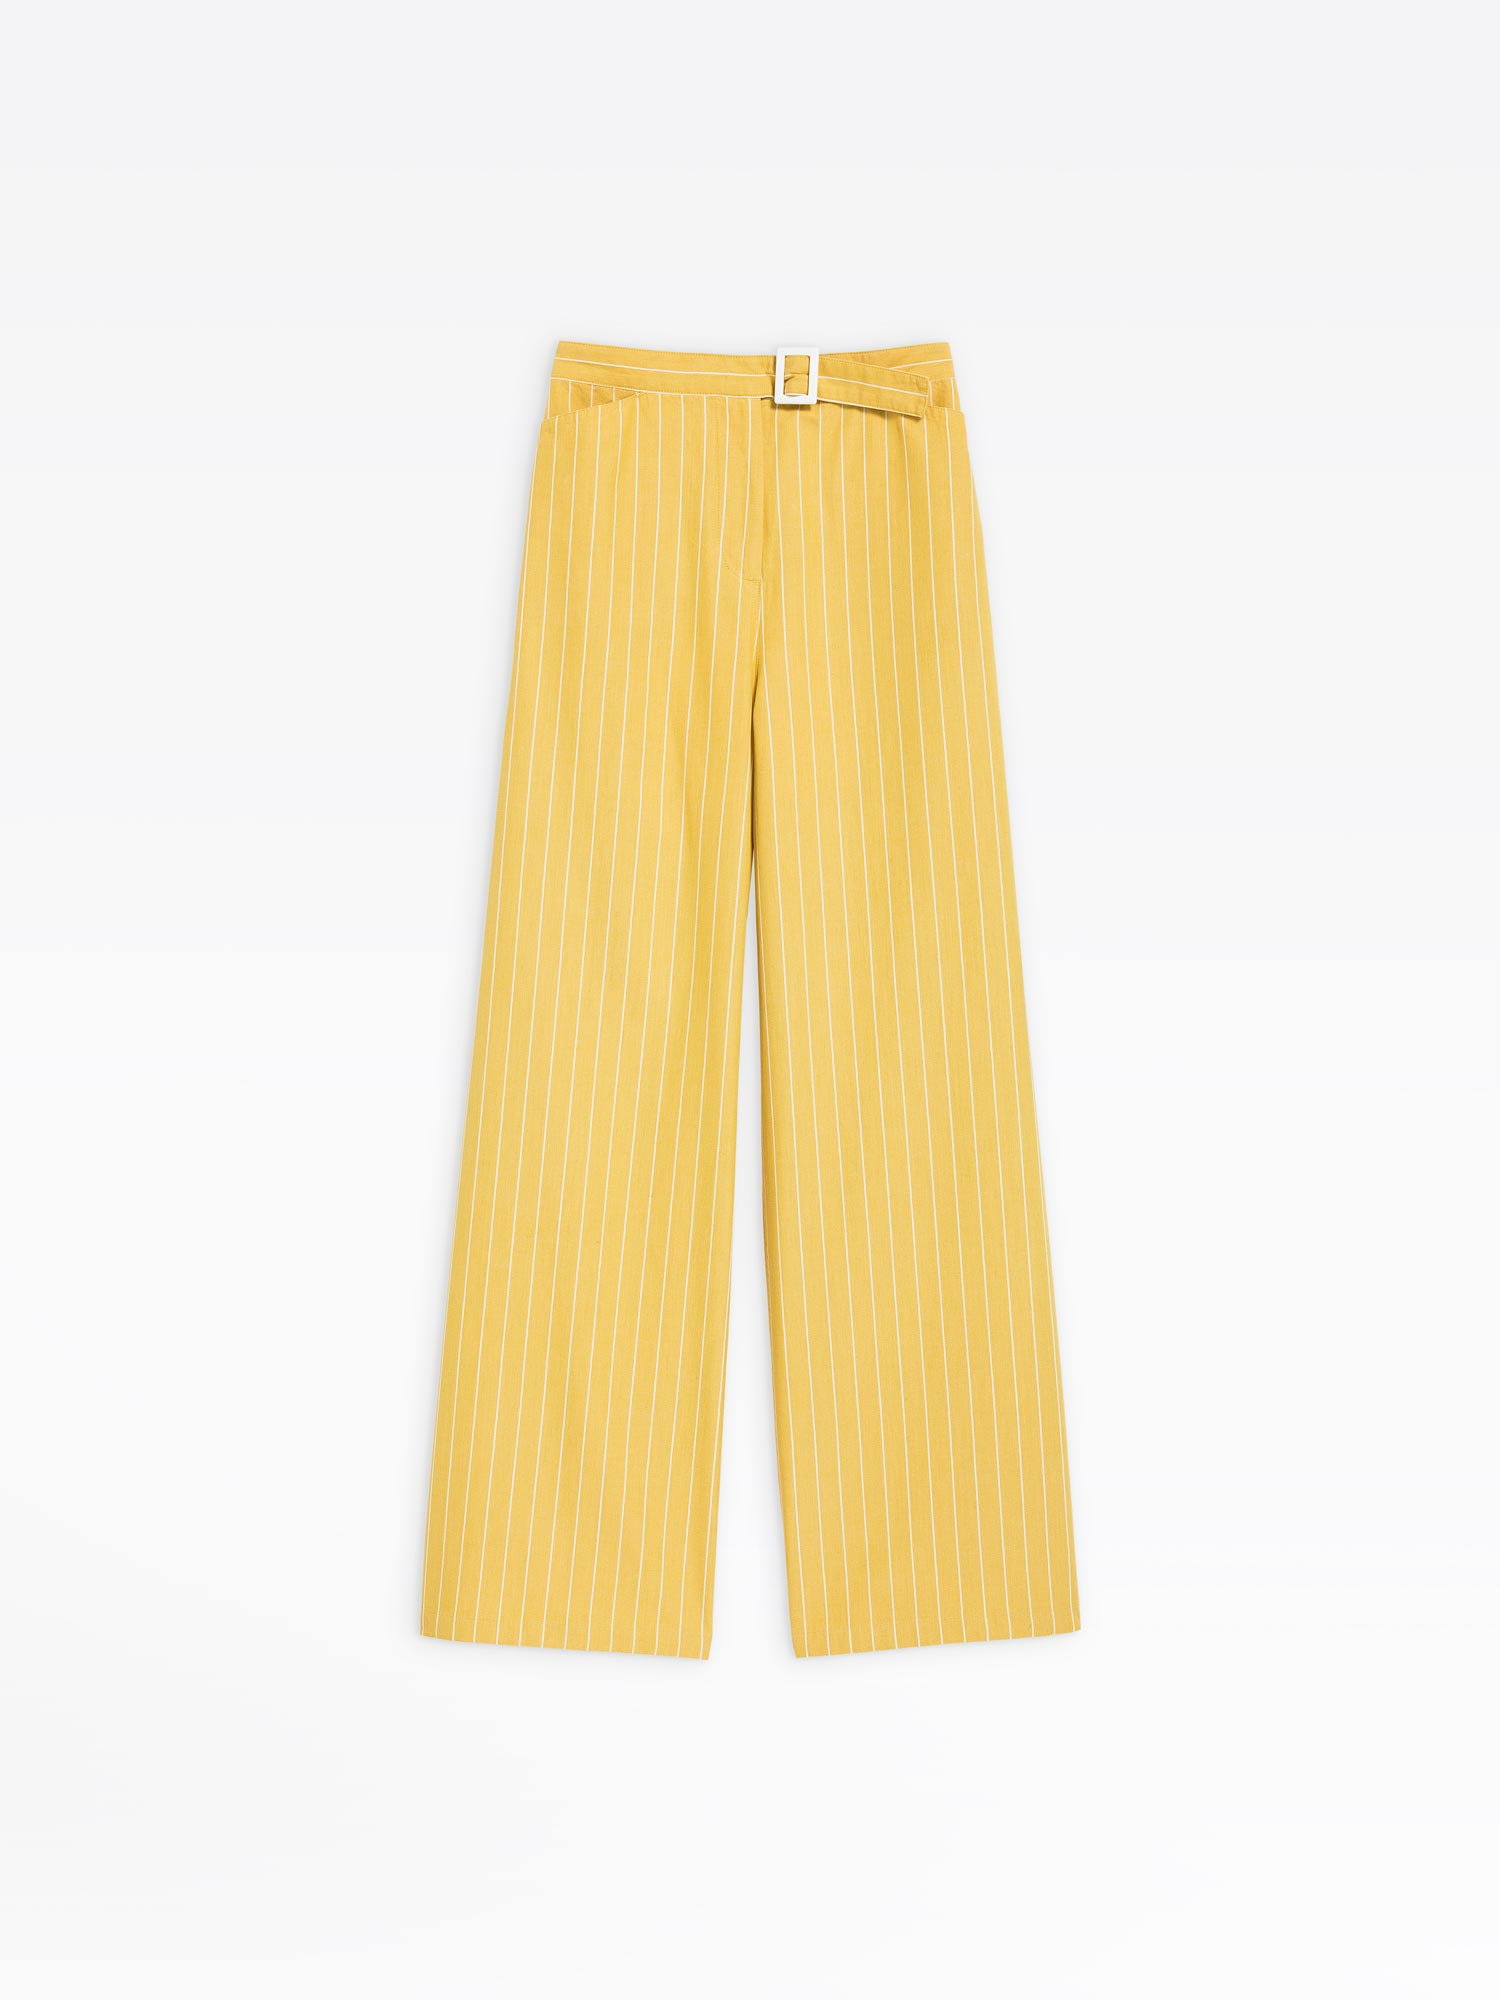 new & pre-owned designer latest style of 2019 popular brand yellow striped ylenia wide-leg trousers